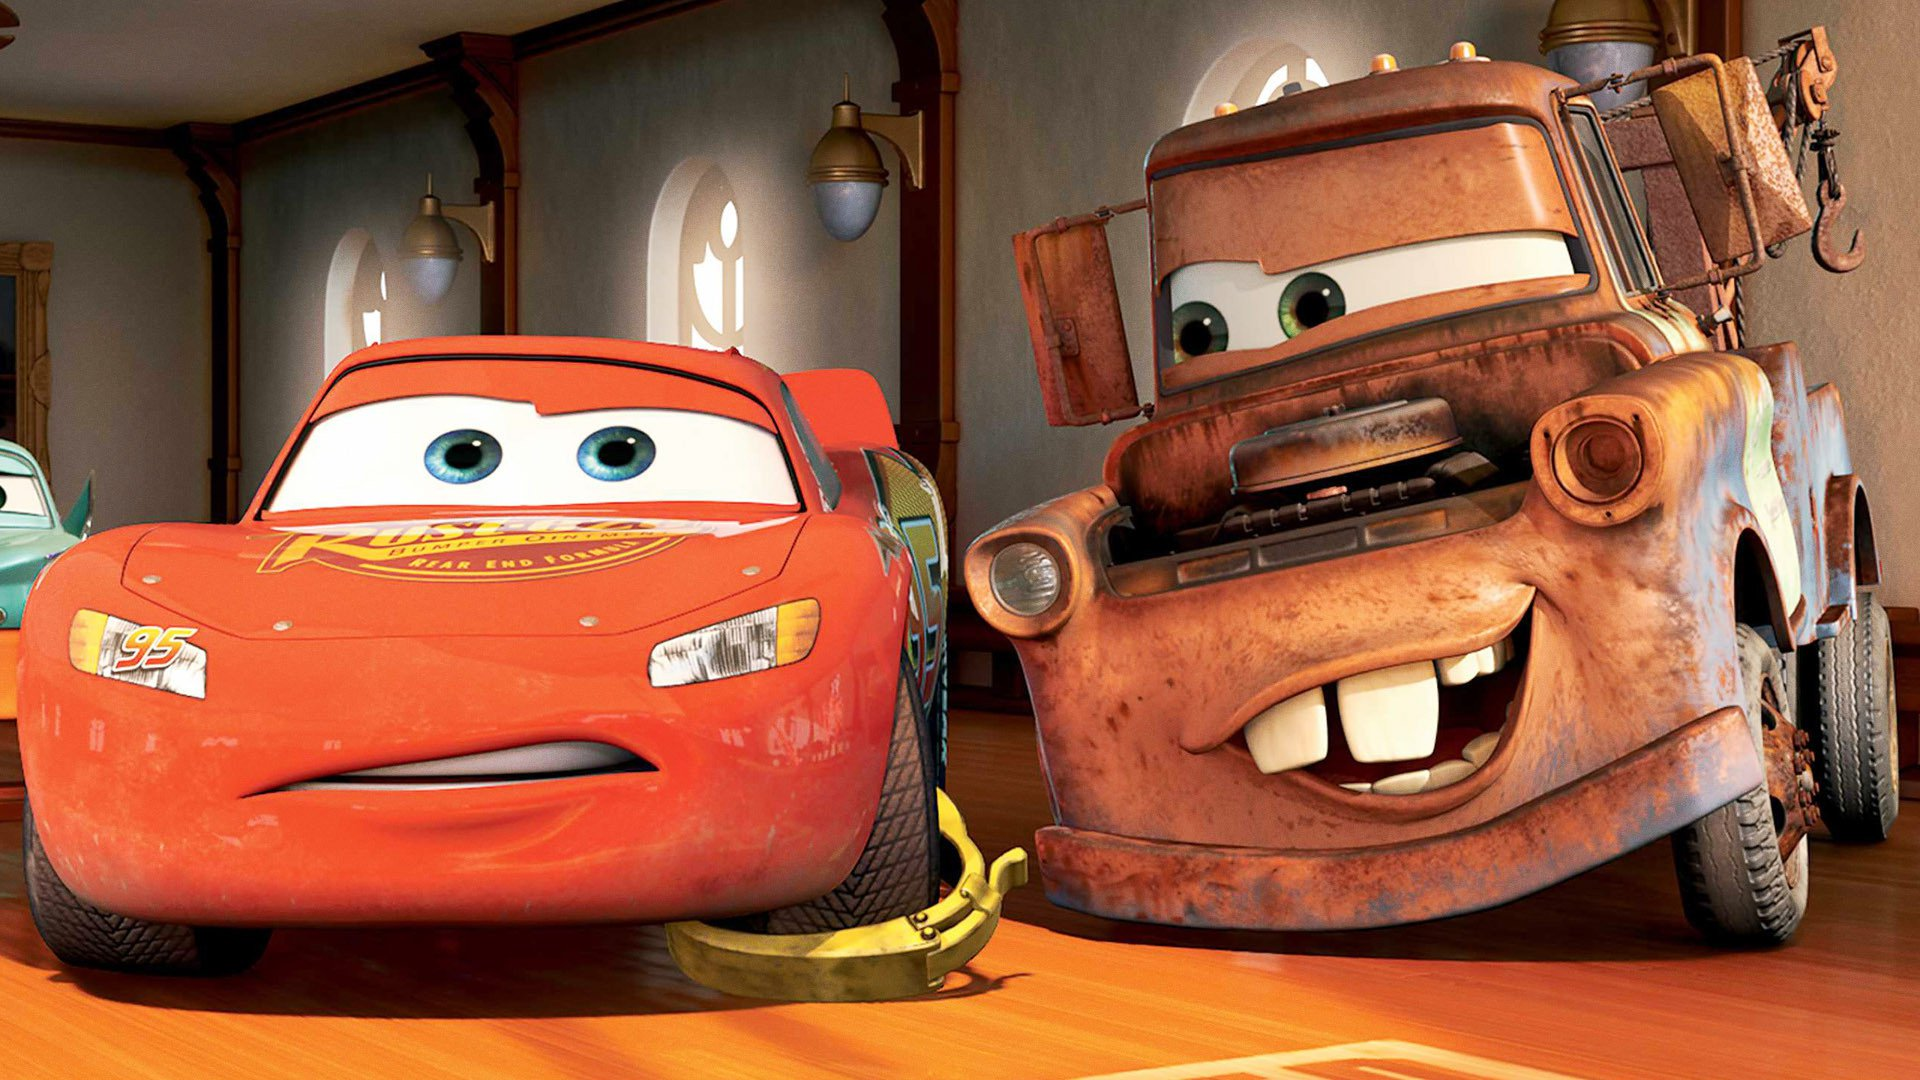 Tow Mater Cars Movie Wallpaper 1920x1200 Cars Hd Wallpaper Background Image 1920x1080 Id